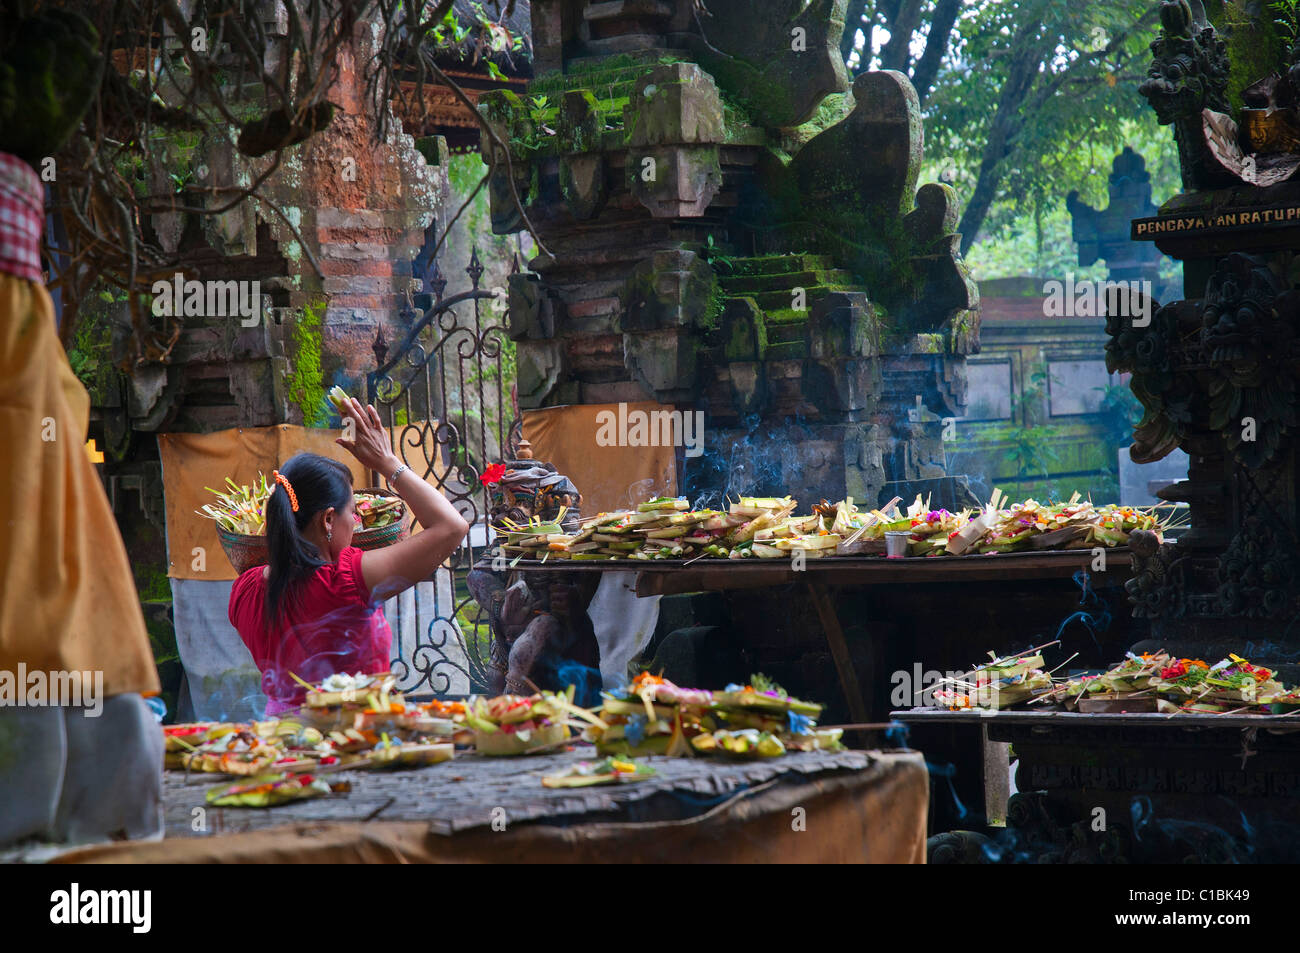 Woman making morning offerings at the busy temple near the main market in Ubud - Stock Image